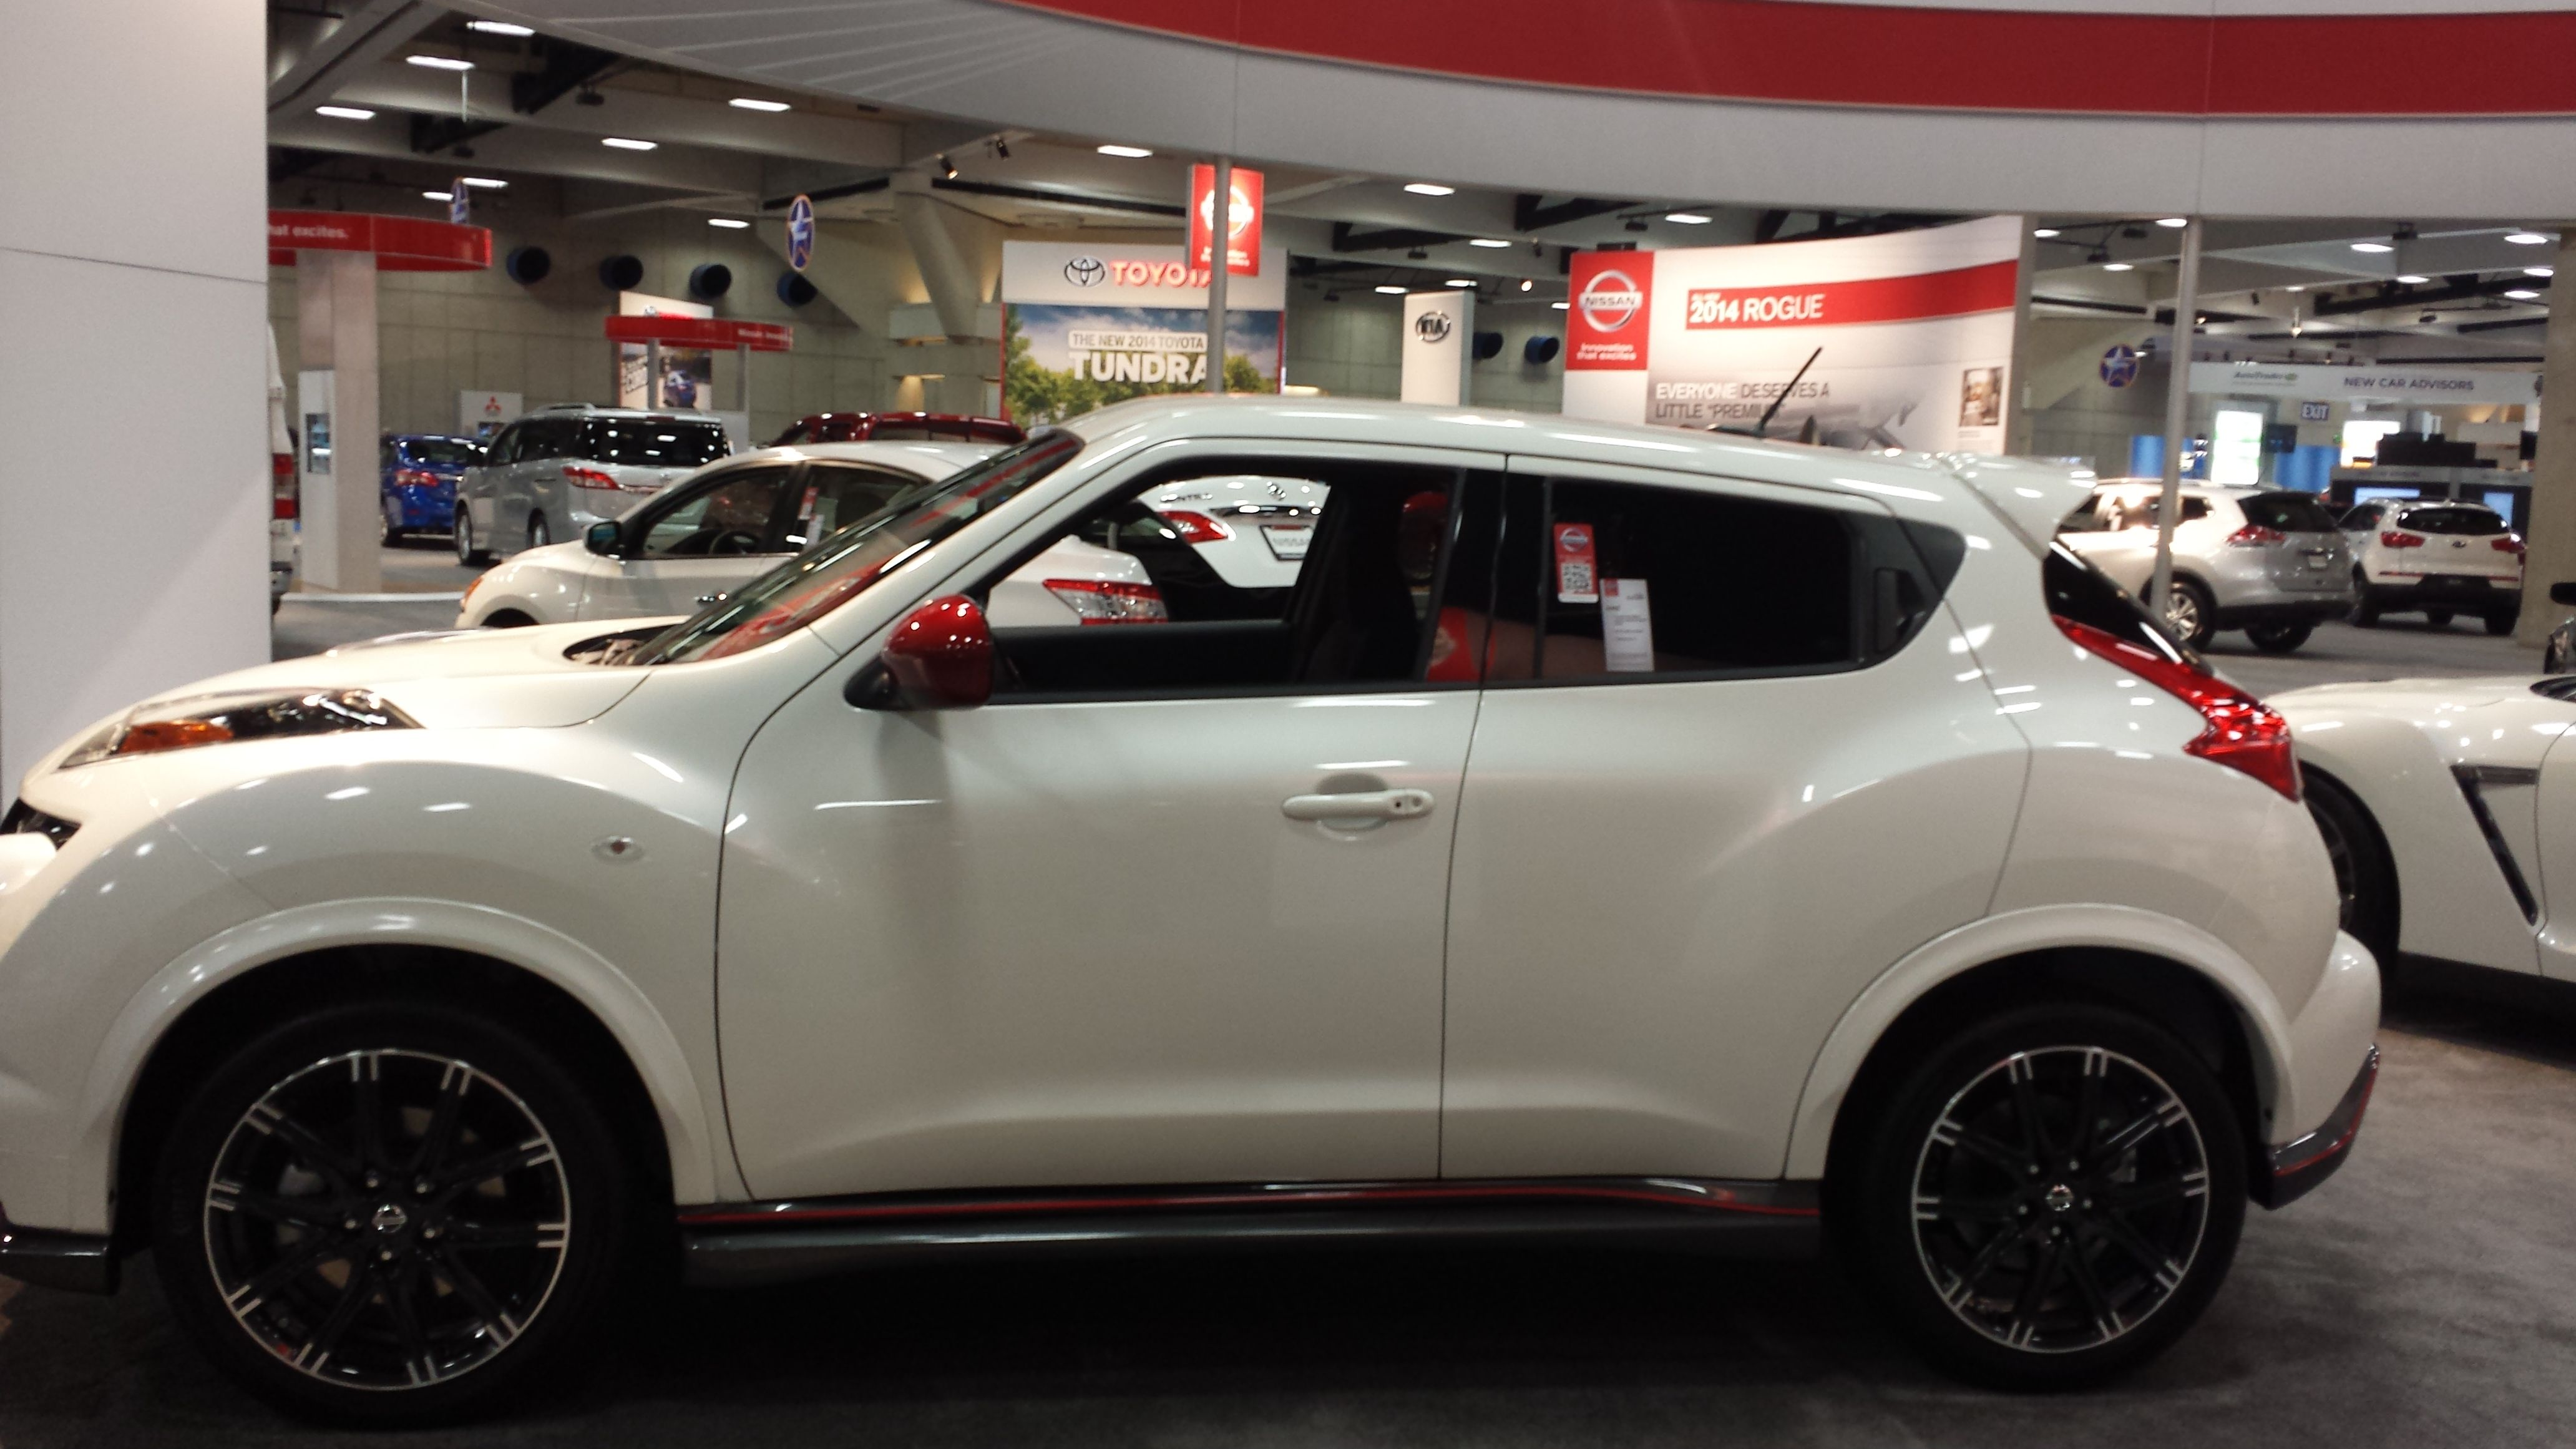 Plan on going to the 2014 San Diego Auto Show this weekend? Be sure to check out the Nissan booth! Here's a sneak peak!